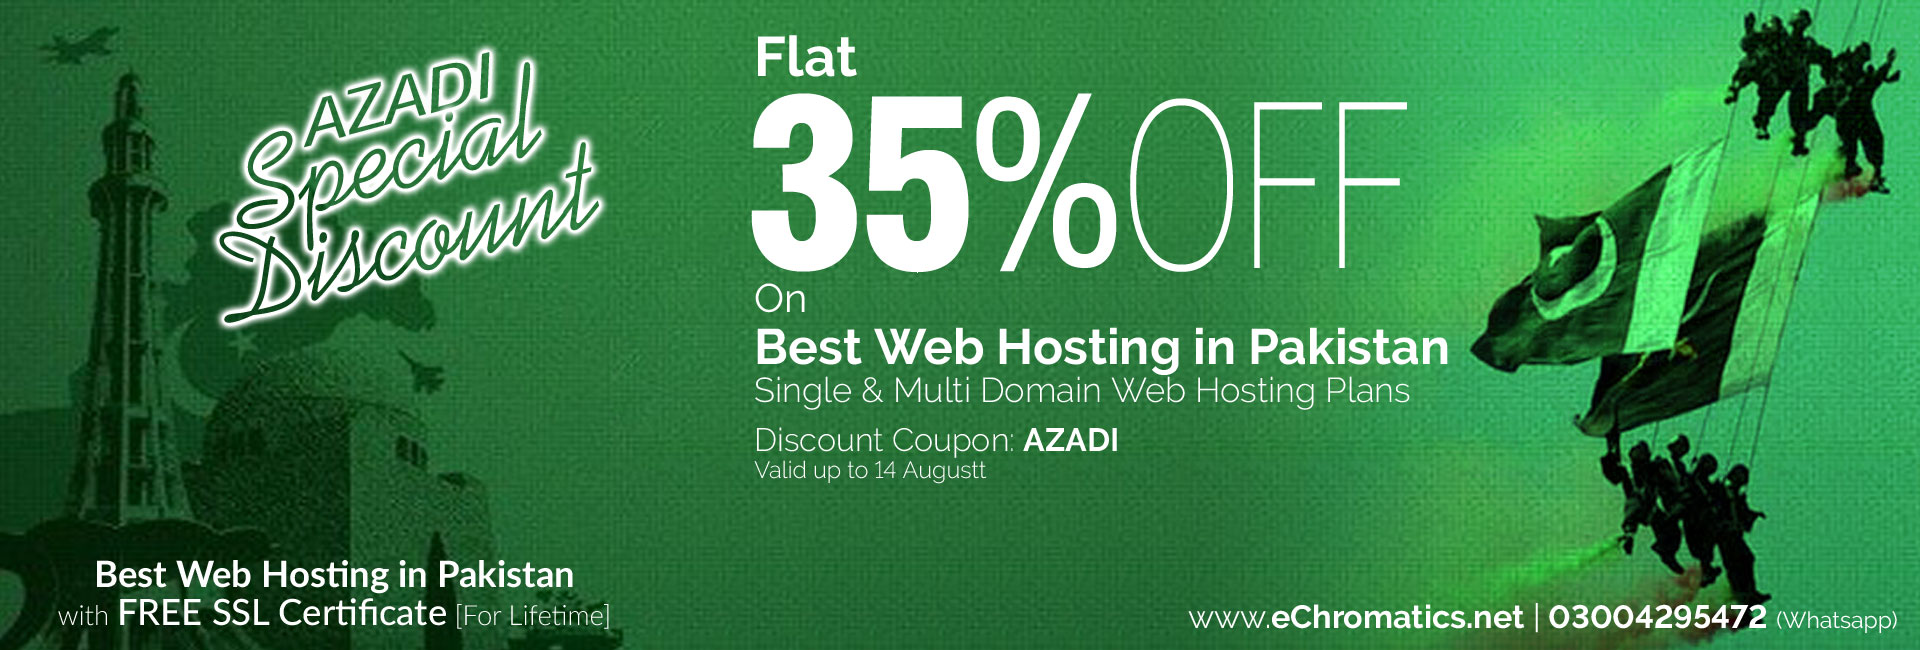 Azadi Offer Special Discount on Best Web Hosting in Pakistan